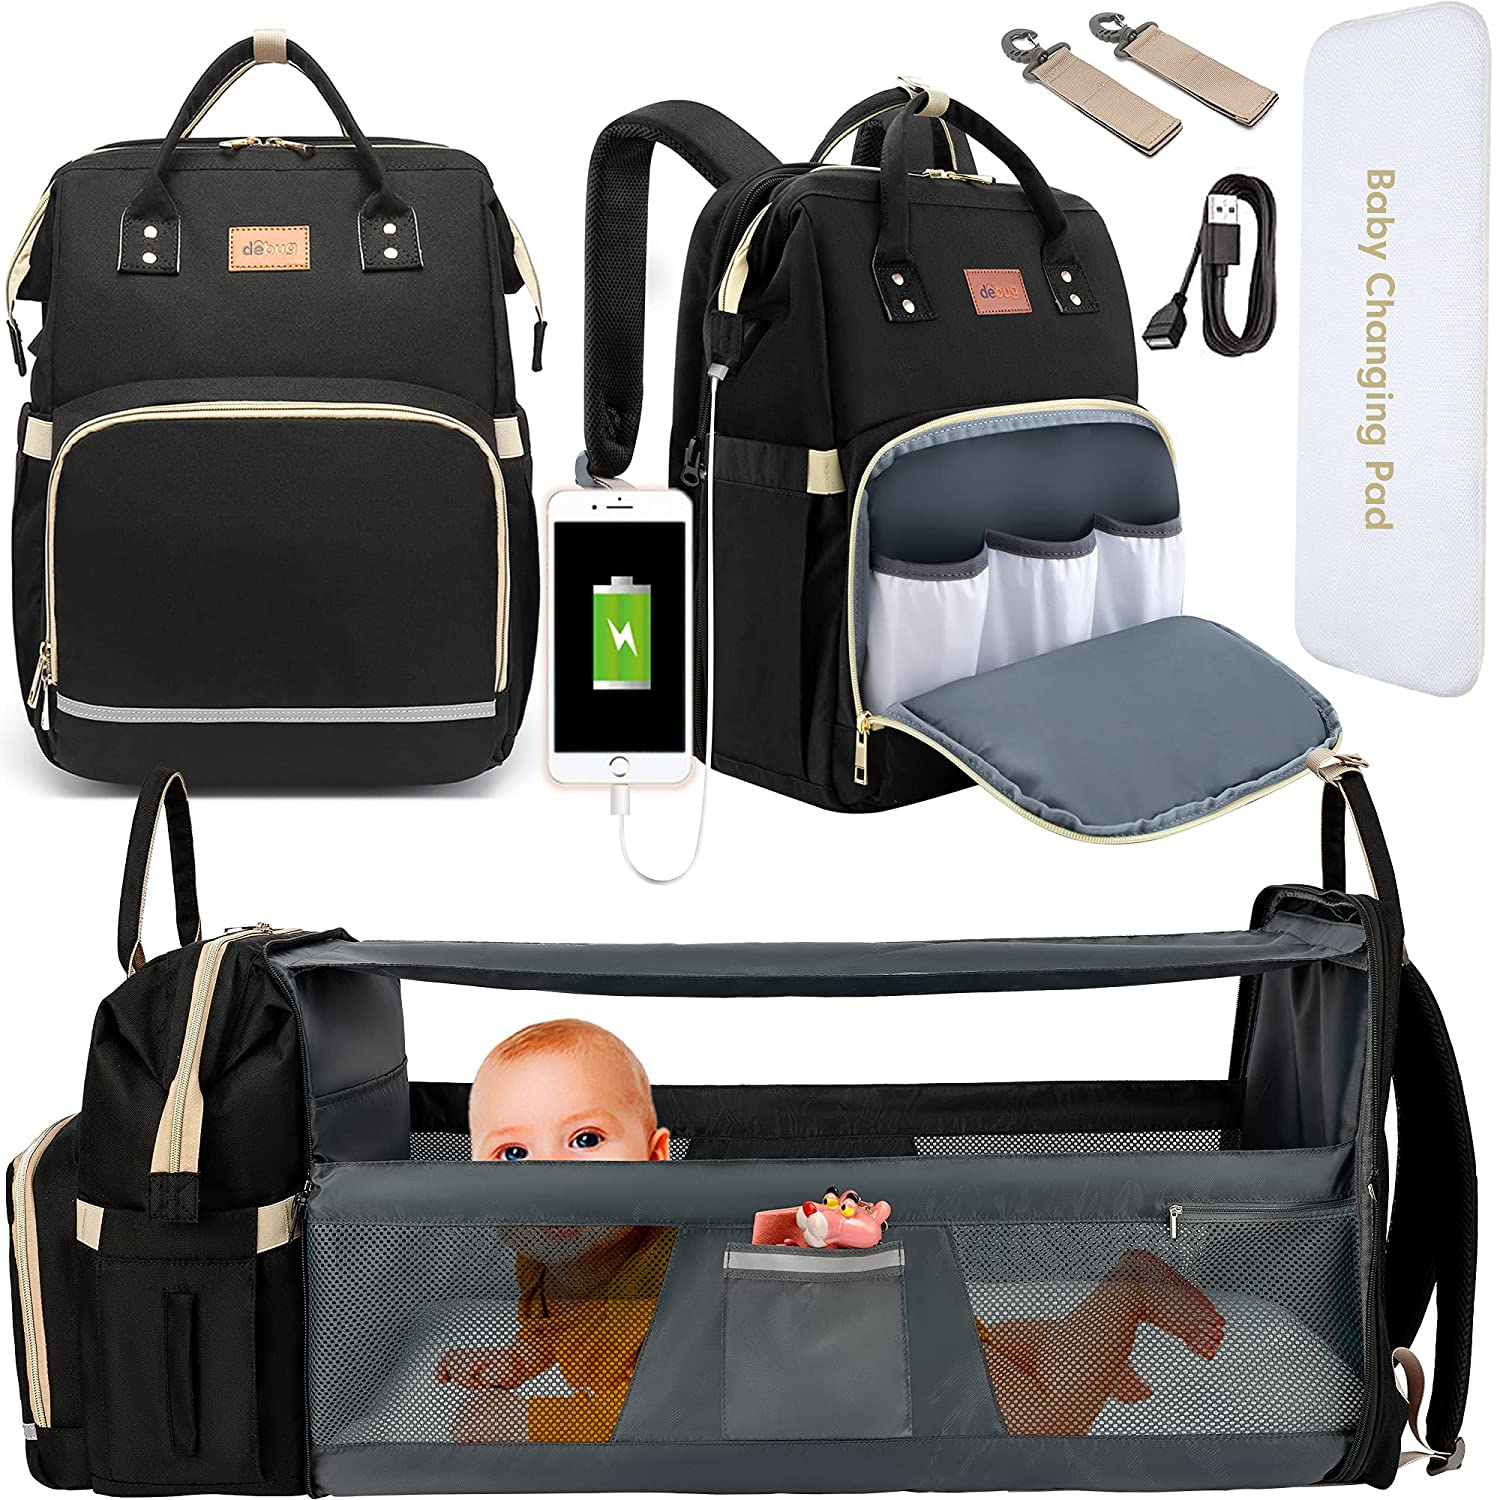 DEBUG Baby Diaper Bag Backpack with Changing Station Baby Bags for Boys Girl, Baby Registry Search Shower Gifts for Girls New Mom Gifts for Women, Travel Waterproof Bookbag with Stroller Straps Black